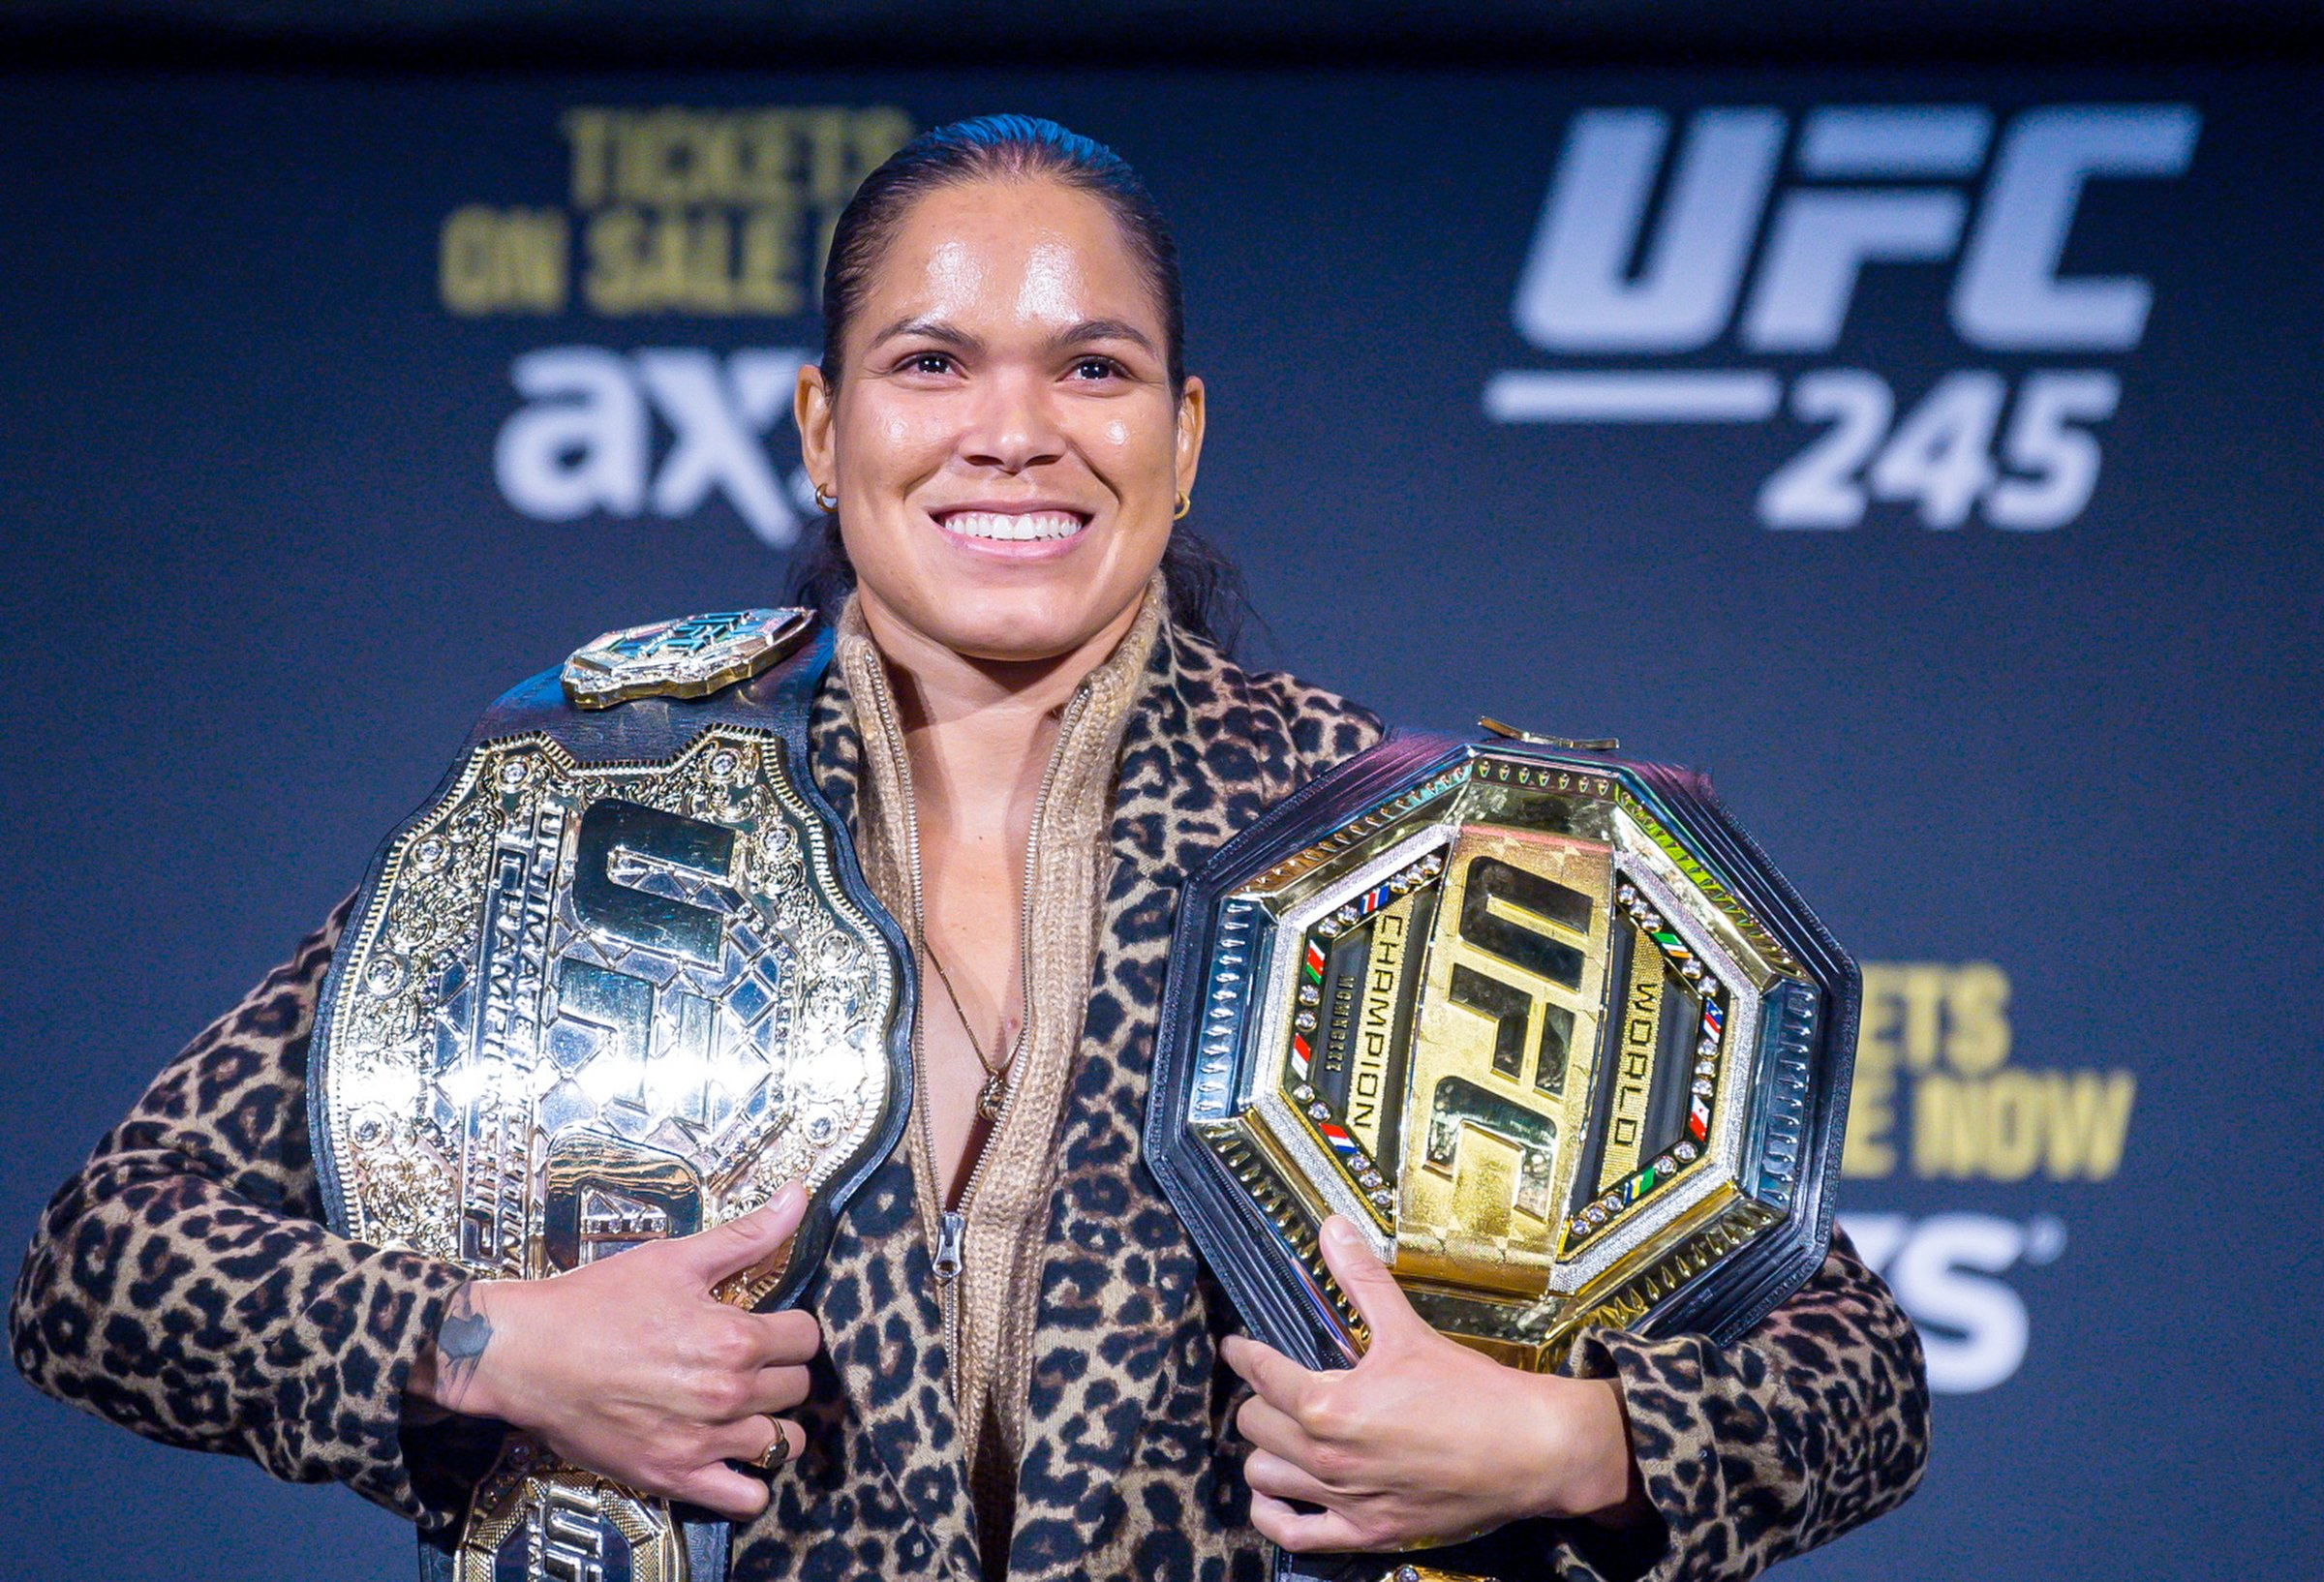 Amanda Nunes urges Claressa Shields to 'come into her world' for super fight ahead of UFC 245